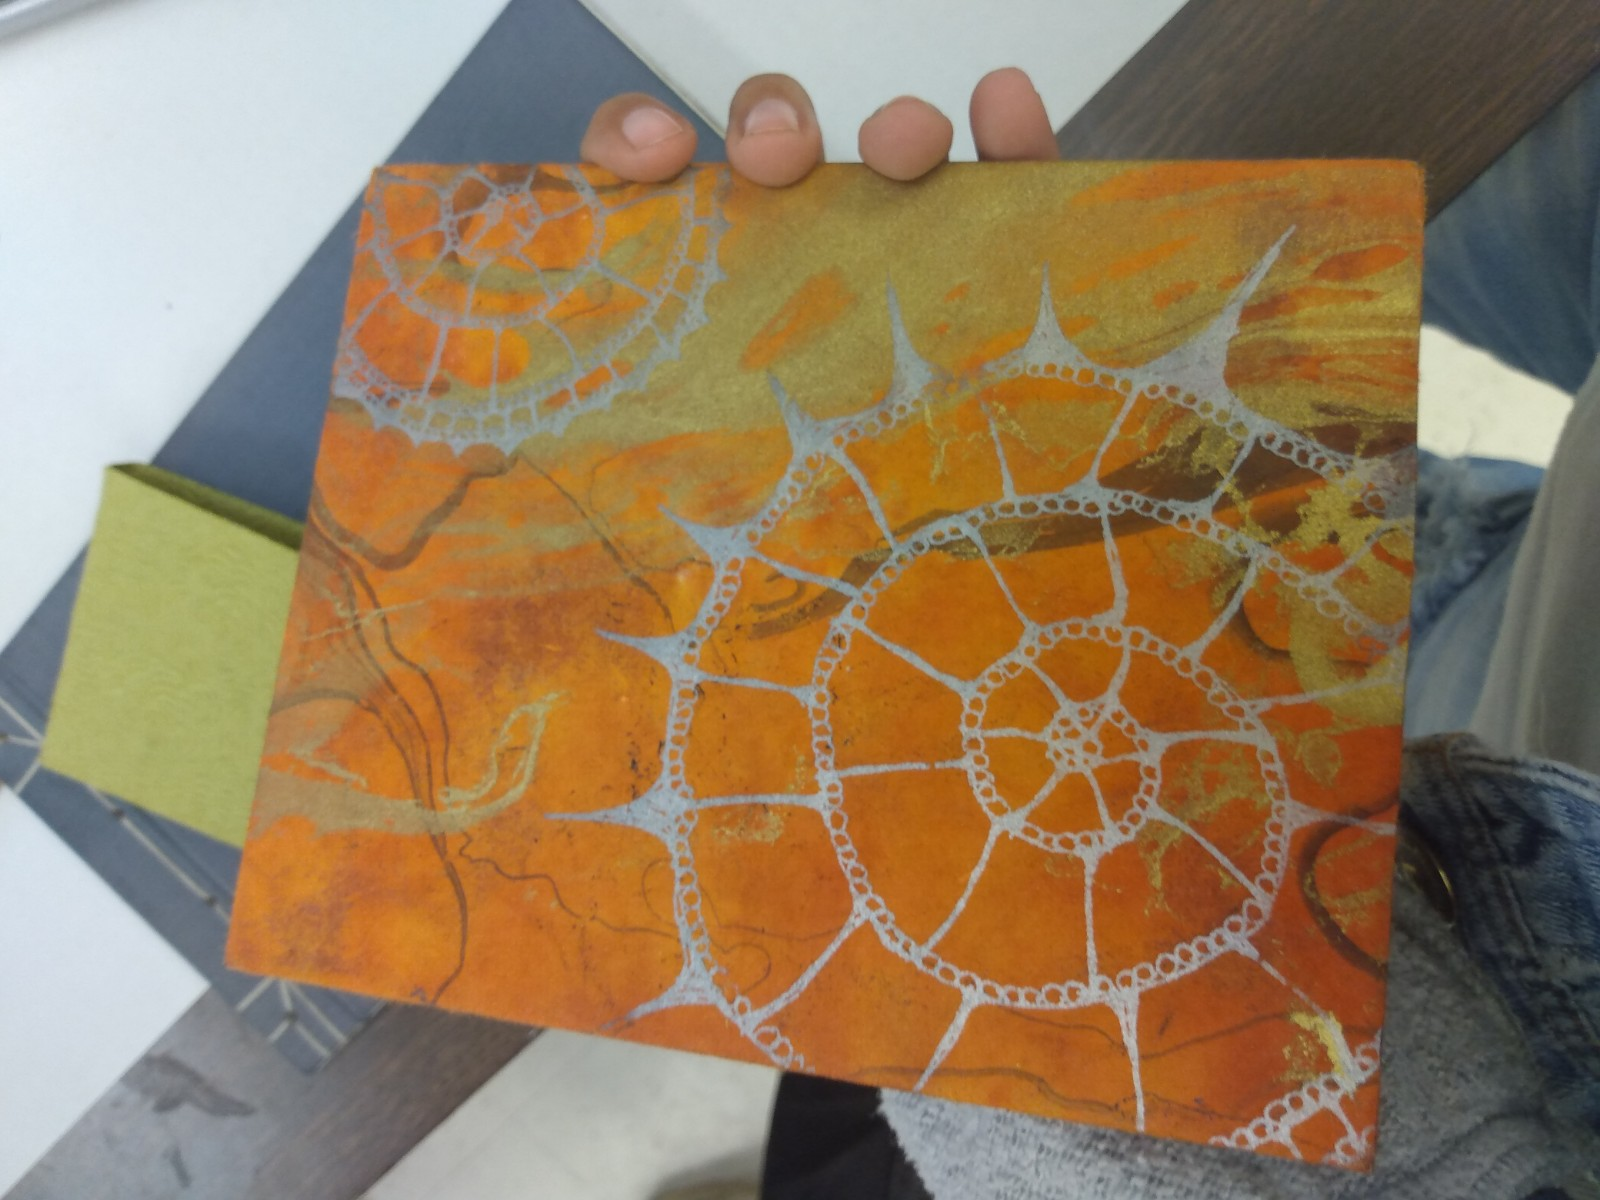 Orange-colored art with a shell pattern is pictured